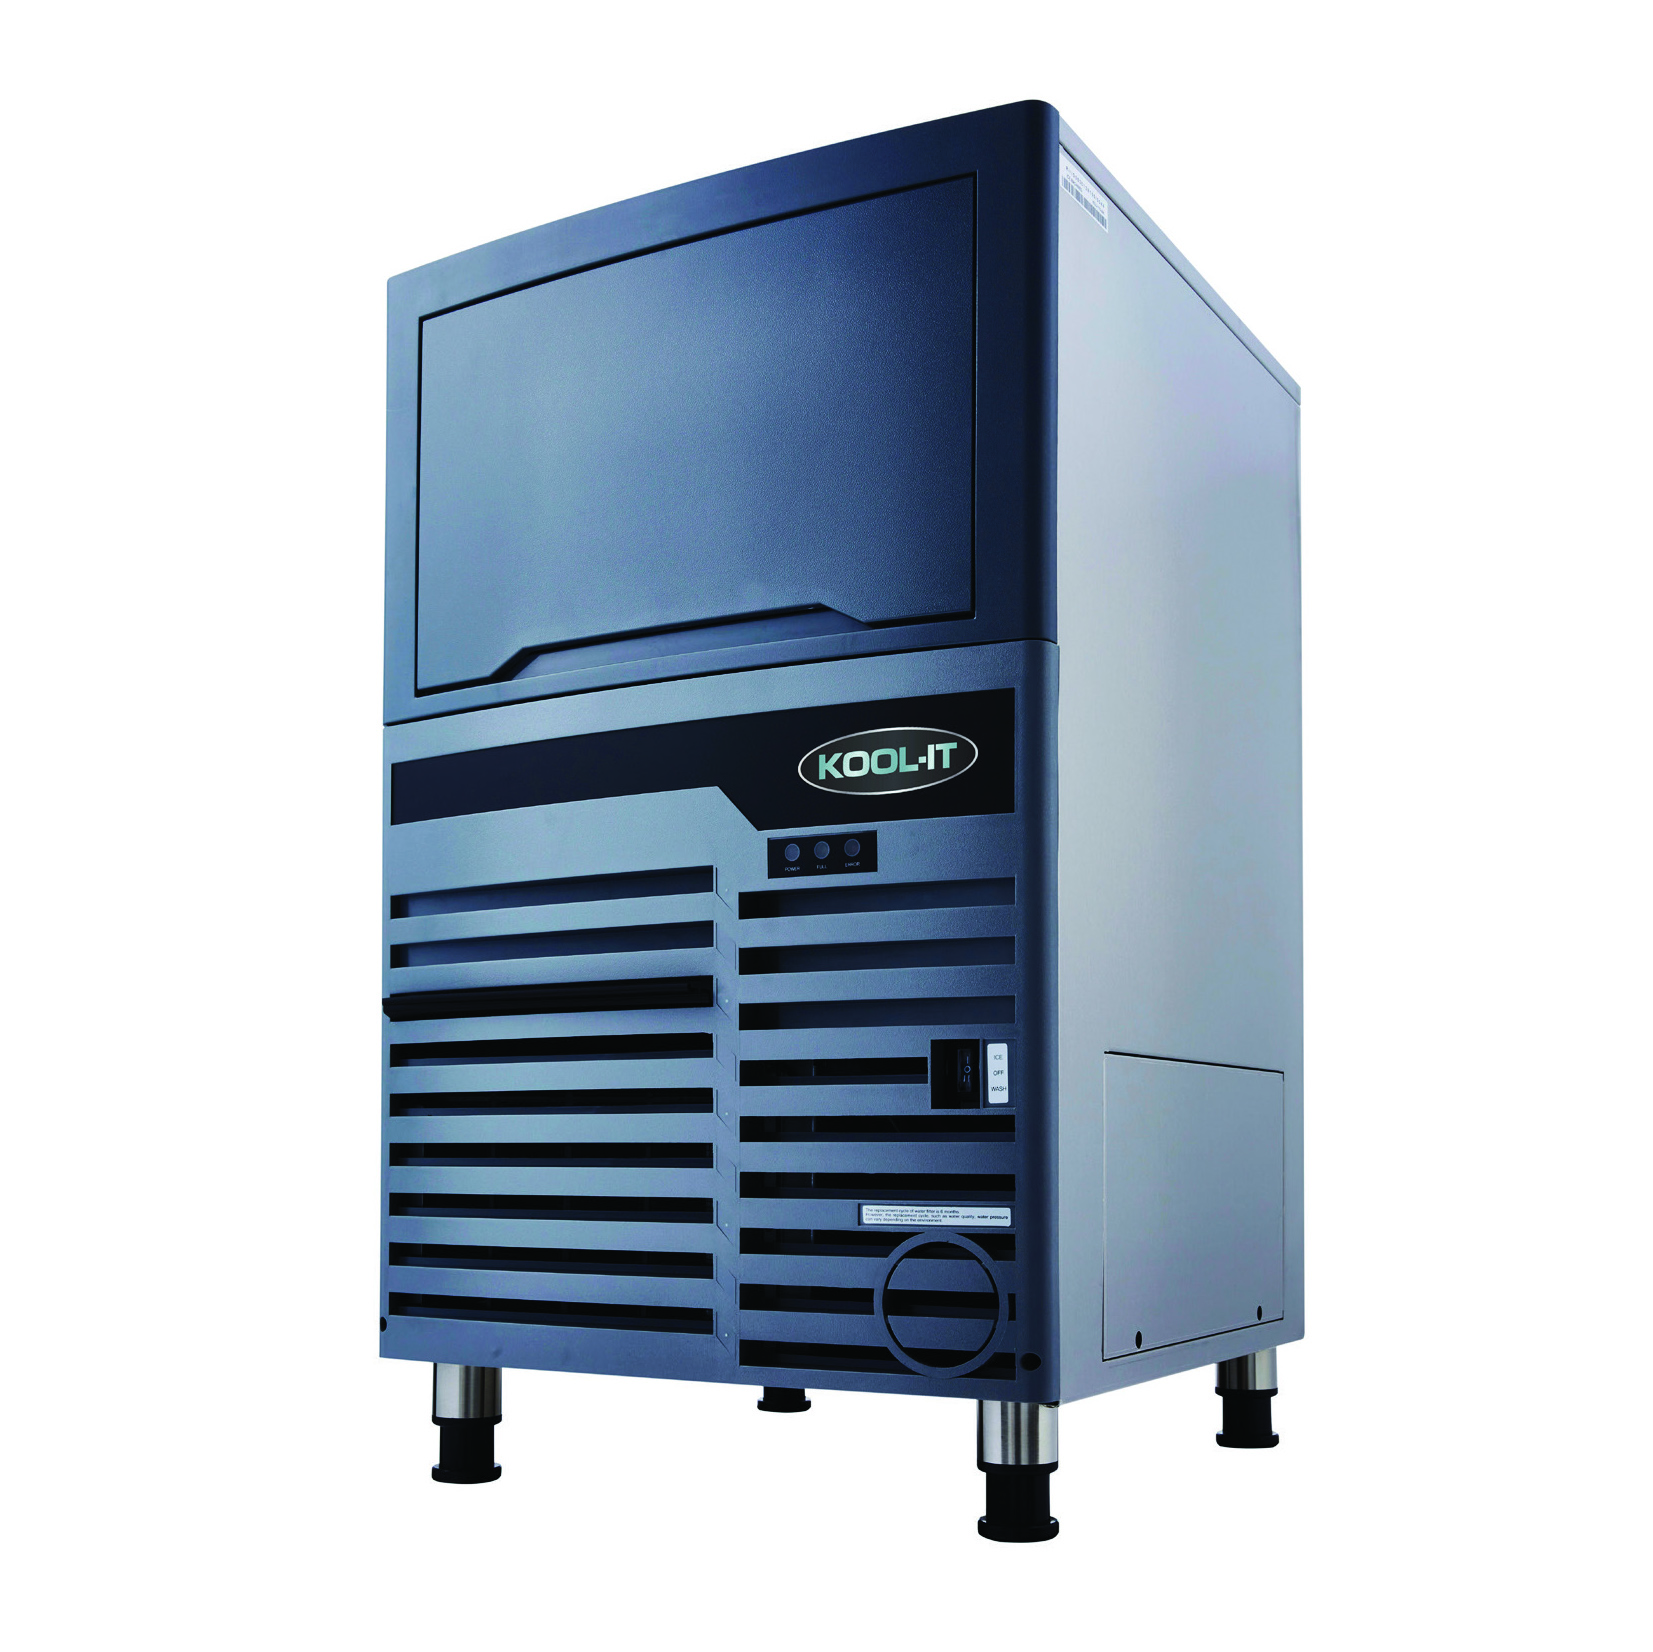 MVP KCU-110-AH ice maker with bin, cube-style